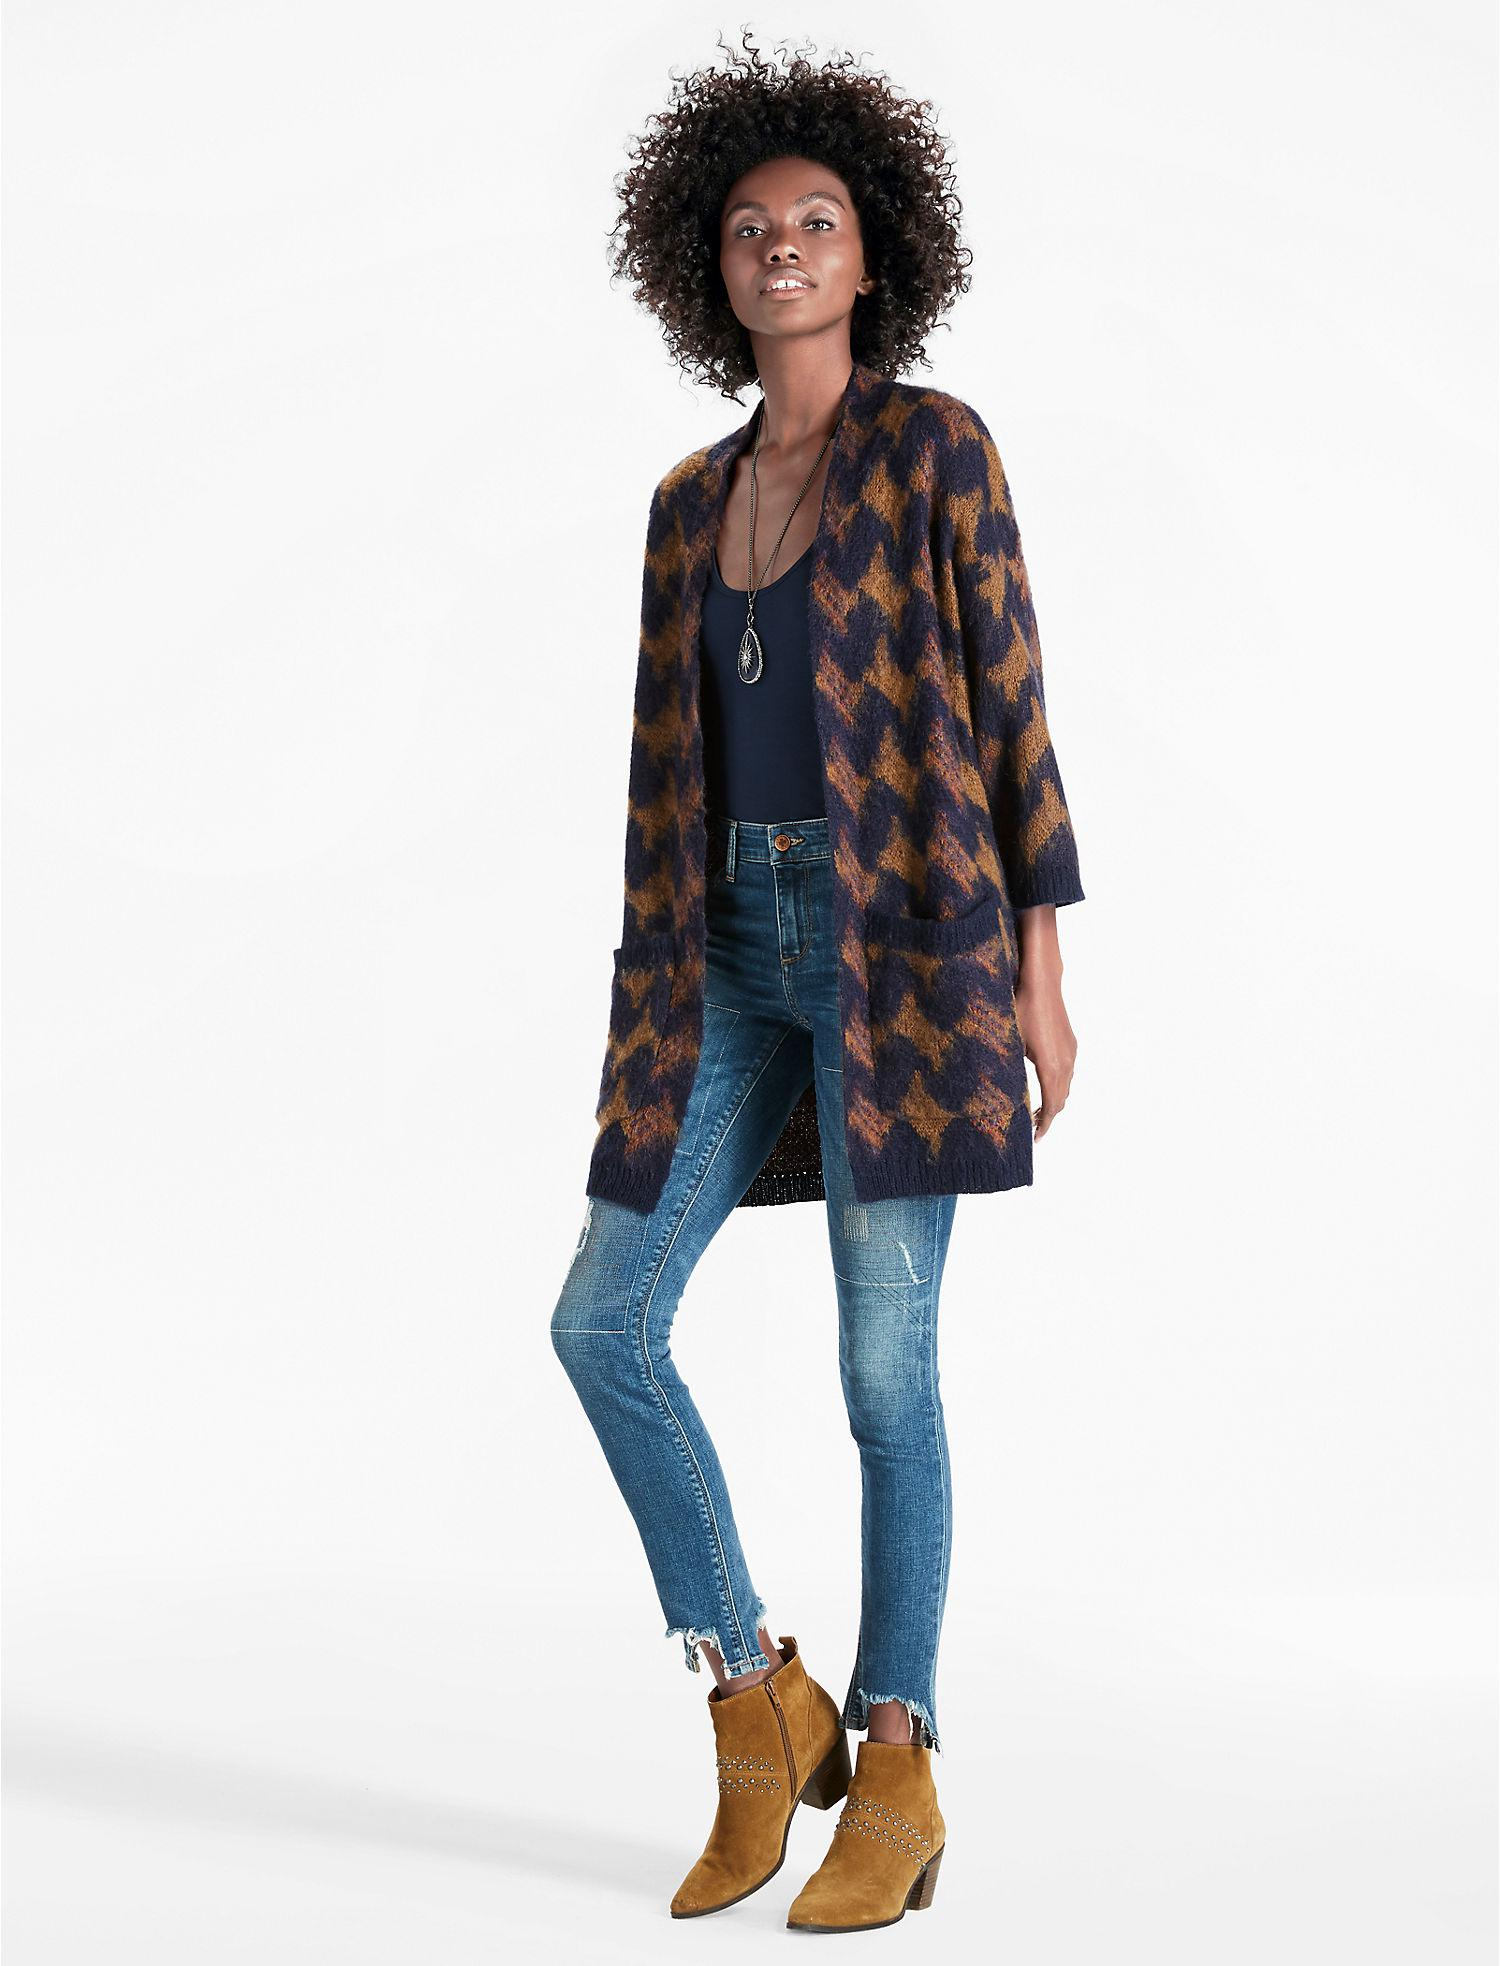 Lucky brand Iona Cardigan - Save 37% | Lyst